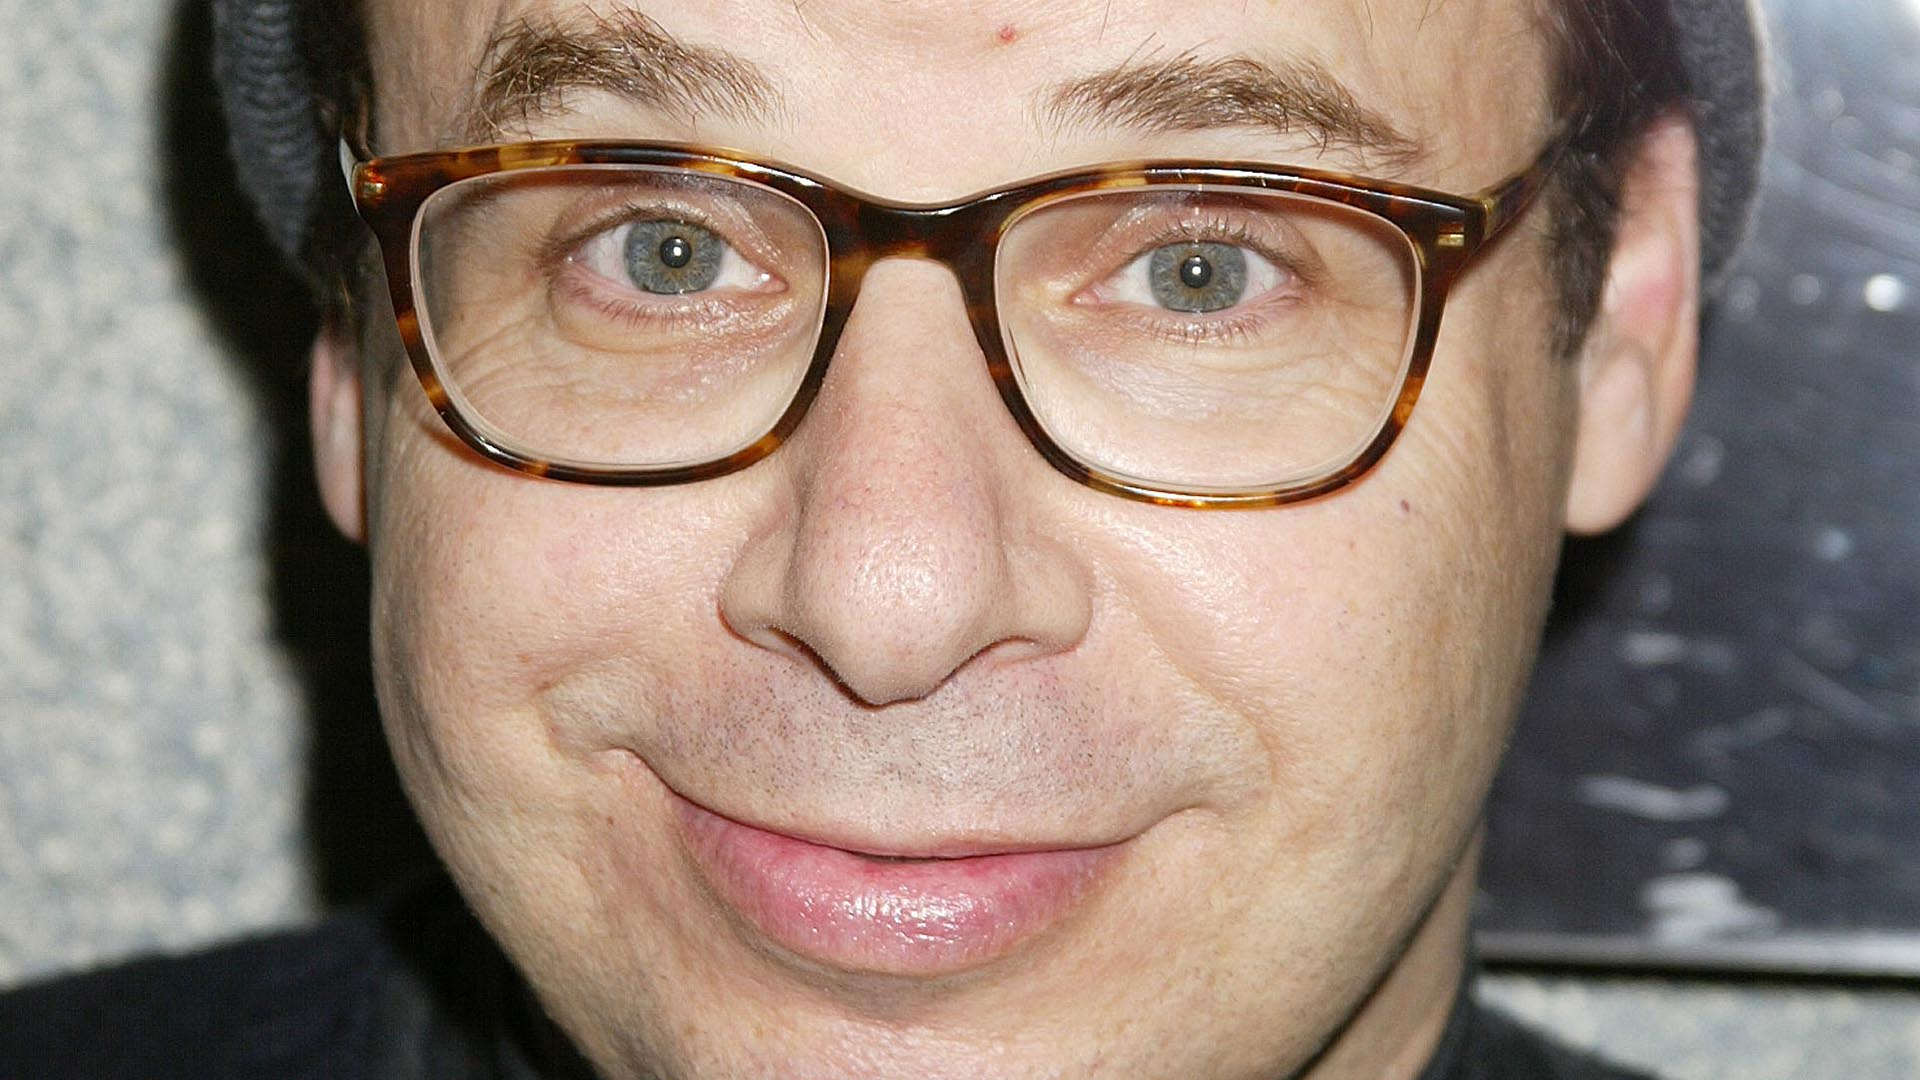 Rick Moranis is back! The Canadian actor returns after a hiatus caused by a tragedy